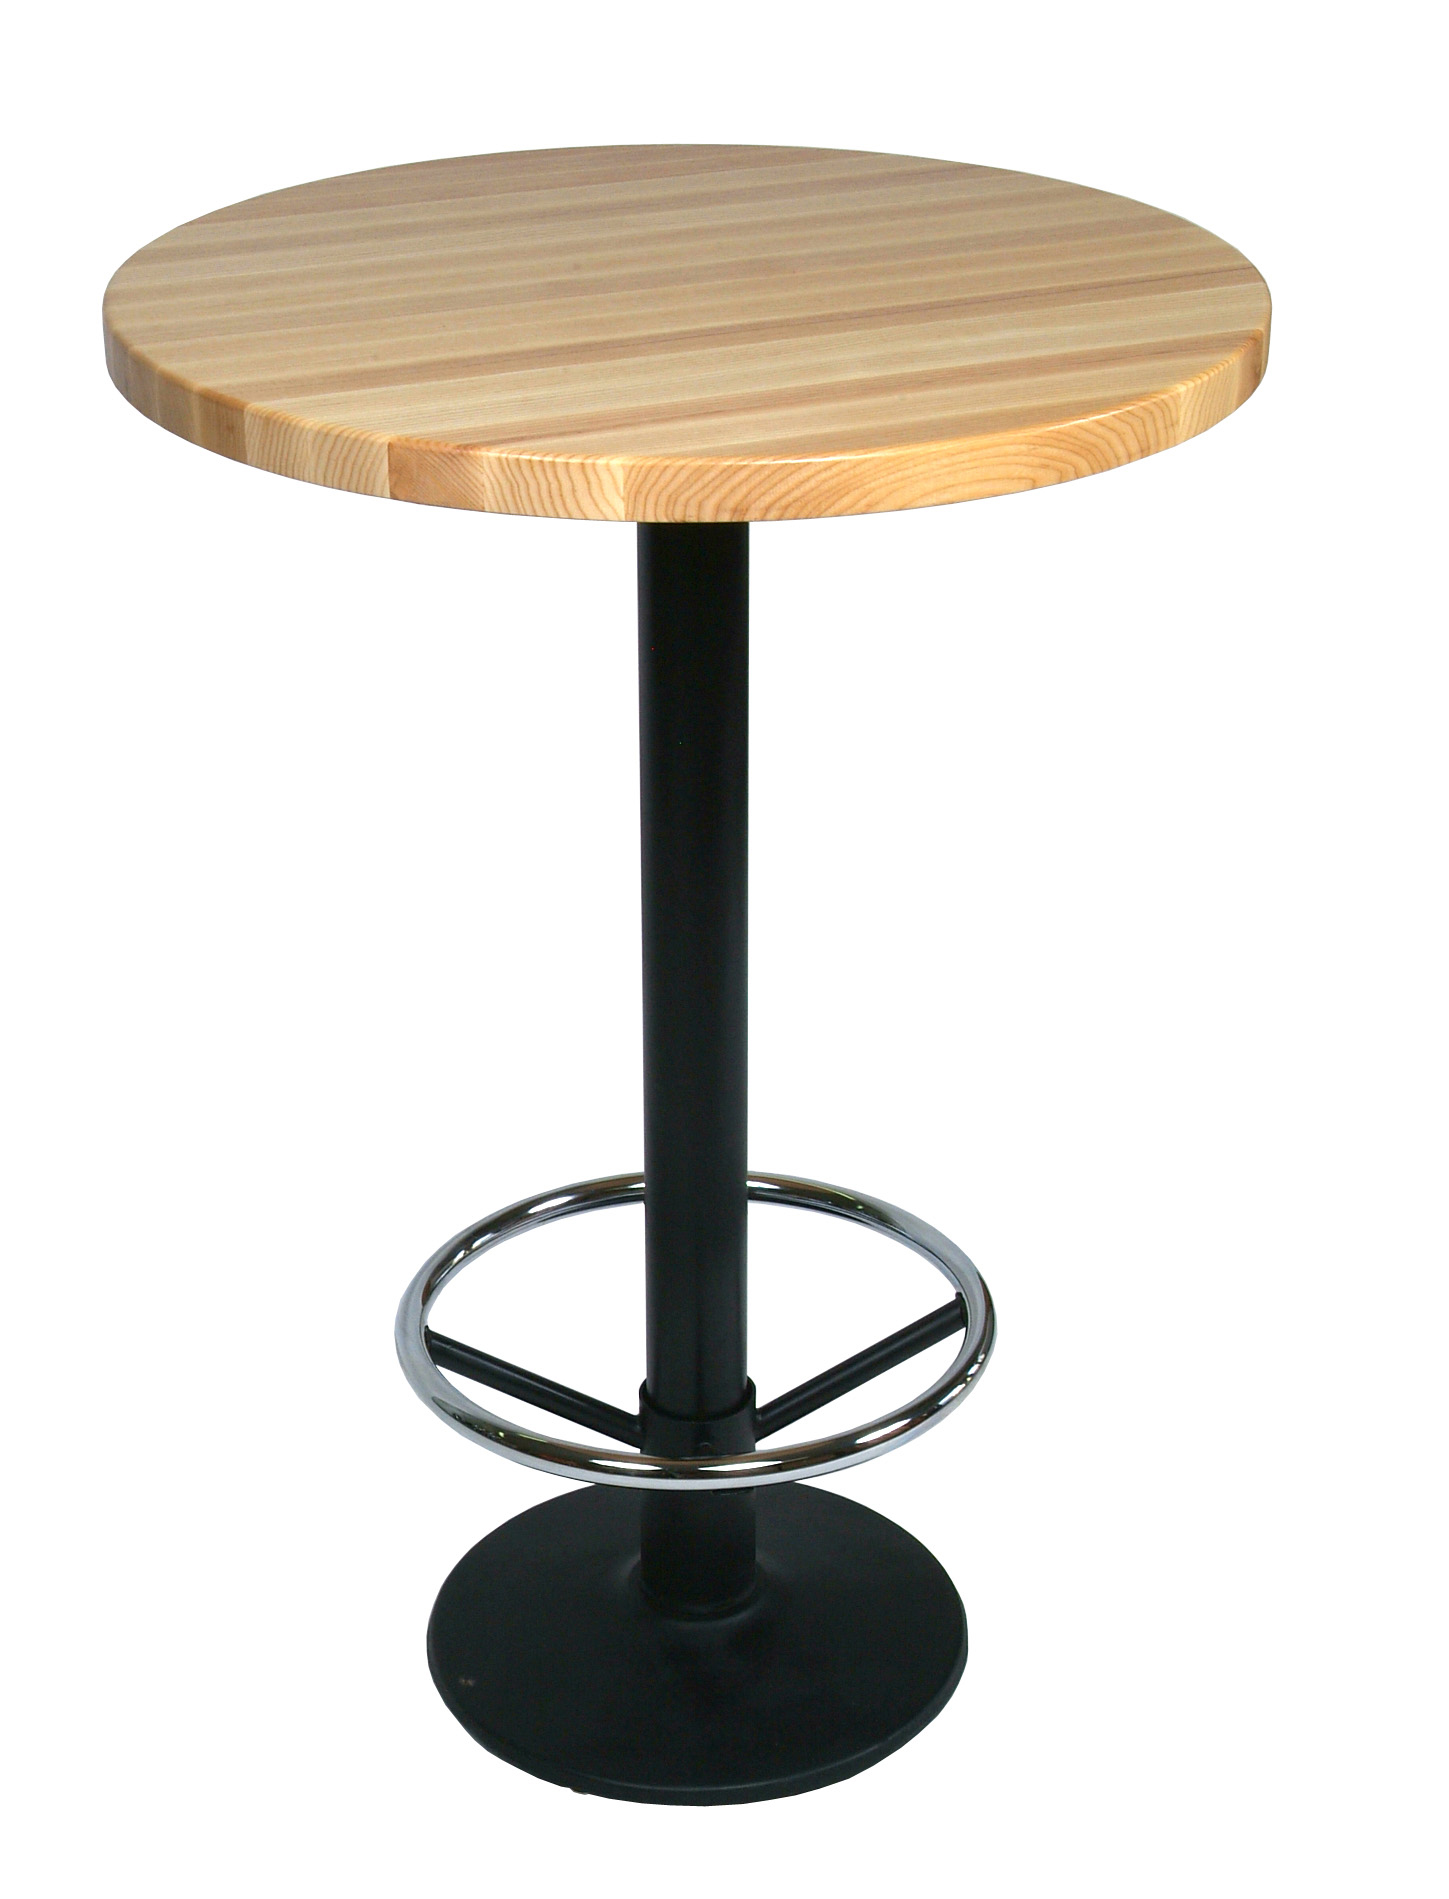 John Boos Oak Edge Grain Butcher Block Table Top on Metal Disc Base with Foot Rest